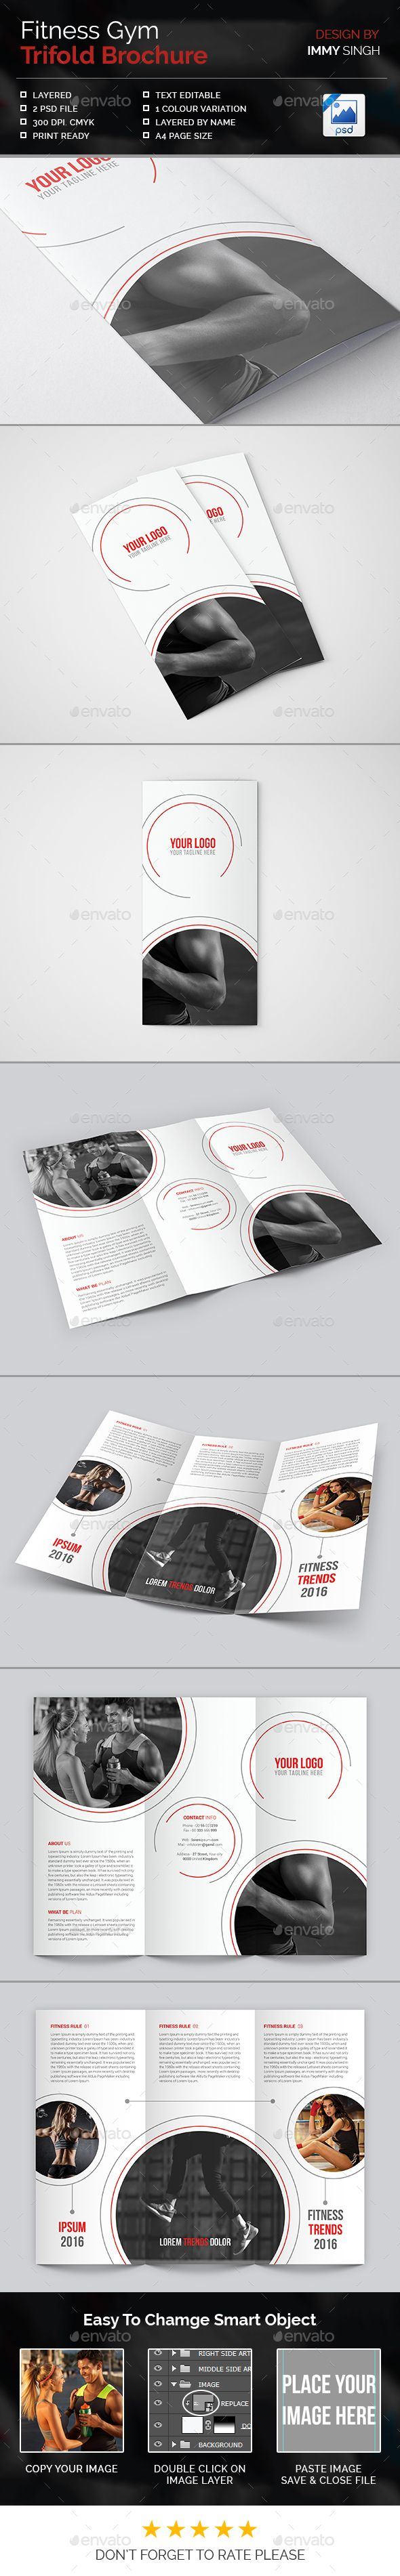 Best  Images On   Layout Design Brochure Design